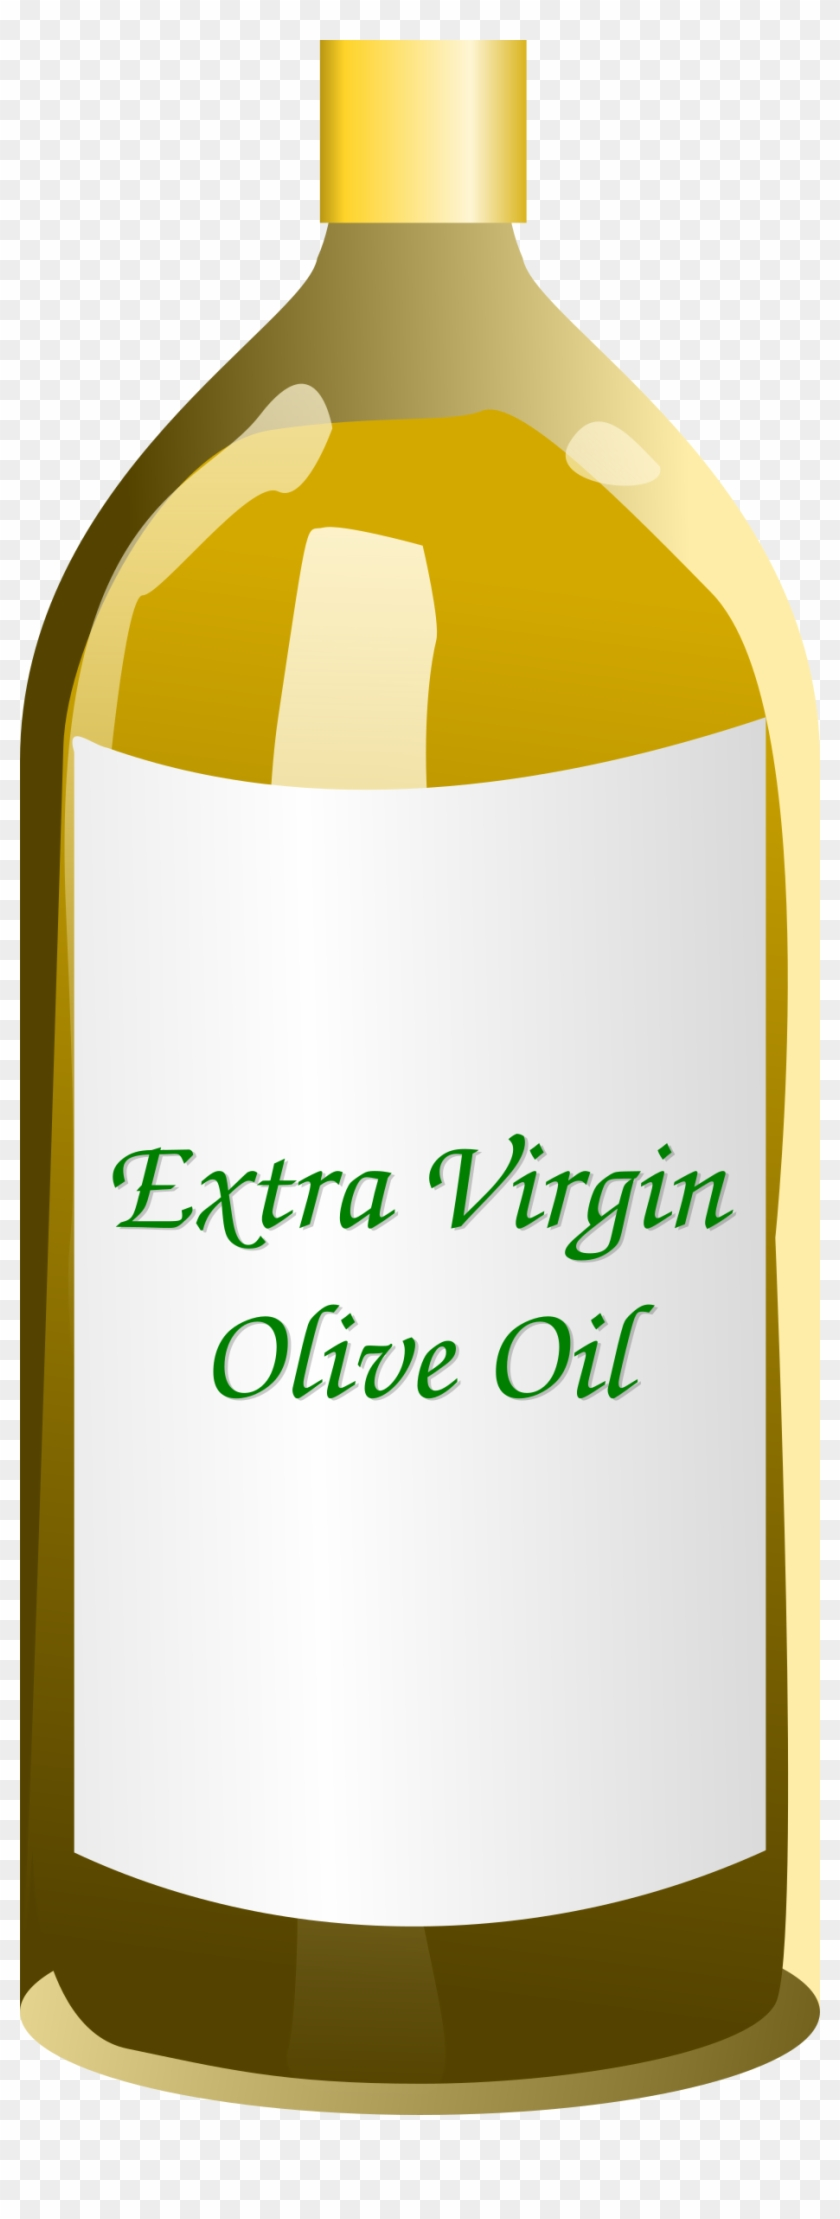 Clipart Extra Virgin Olive Oil Bottle - Clipart Olive Oil #271763